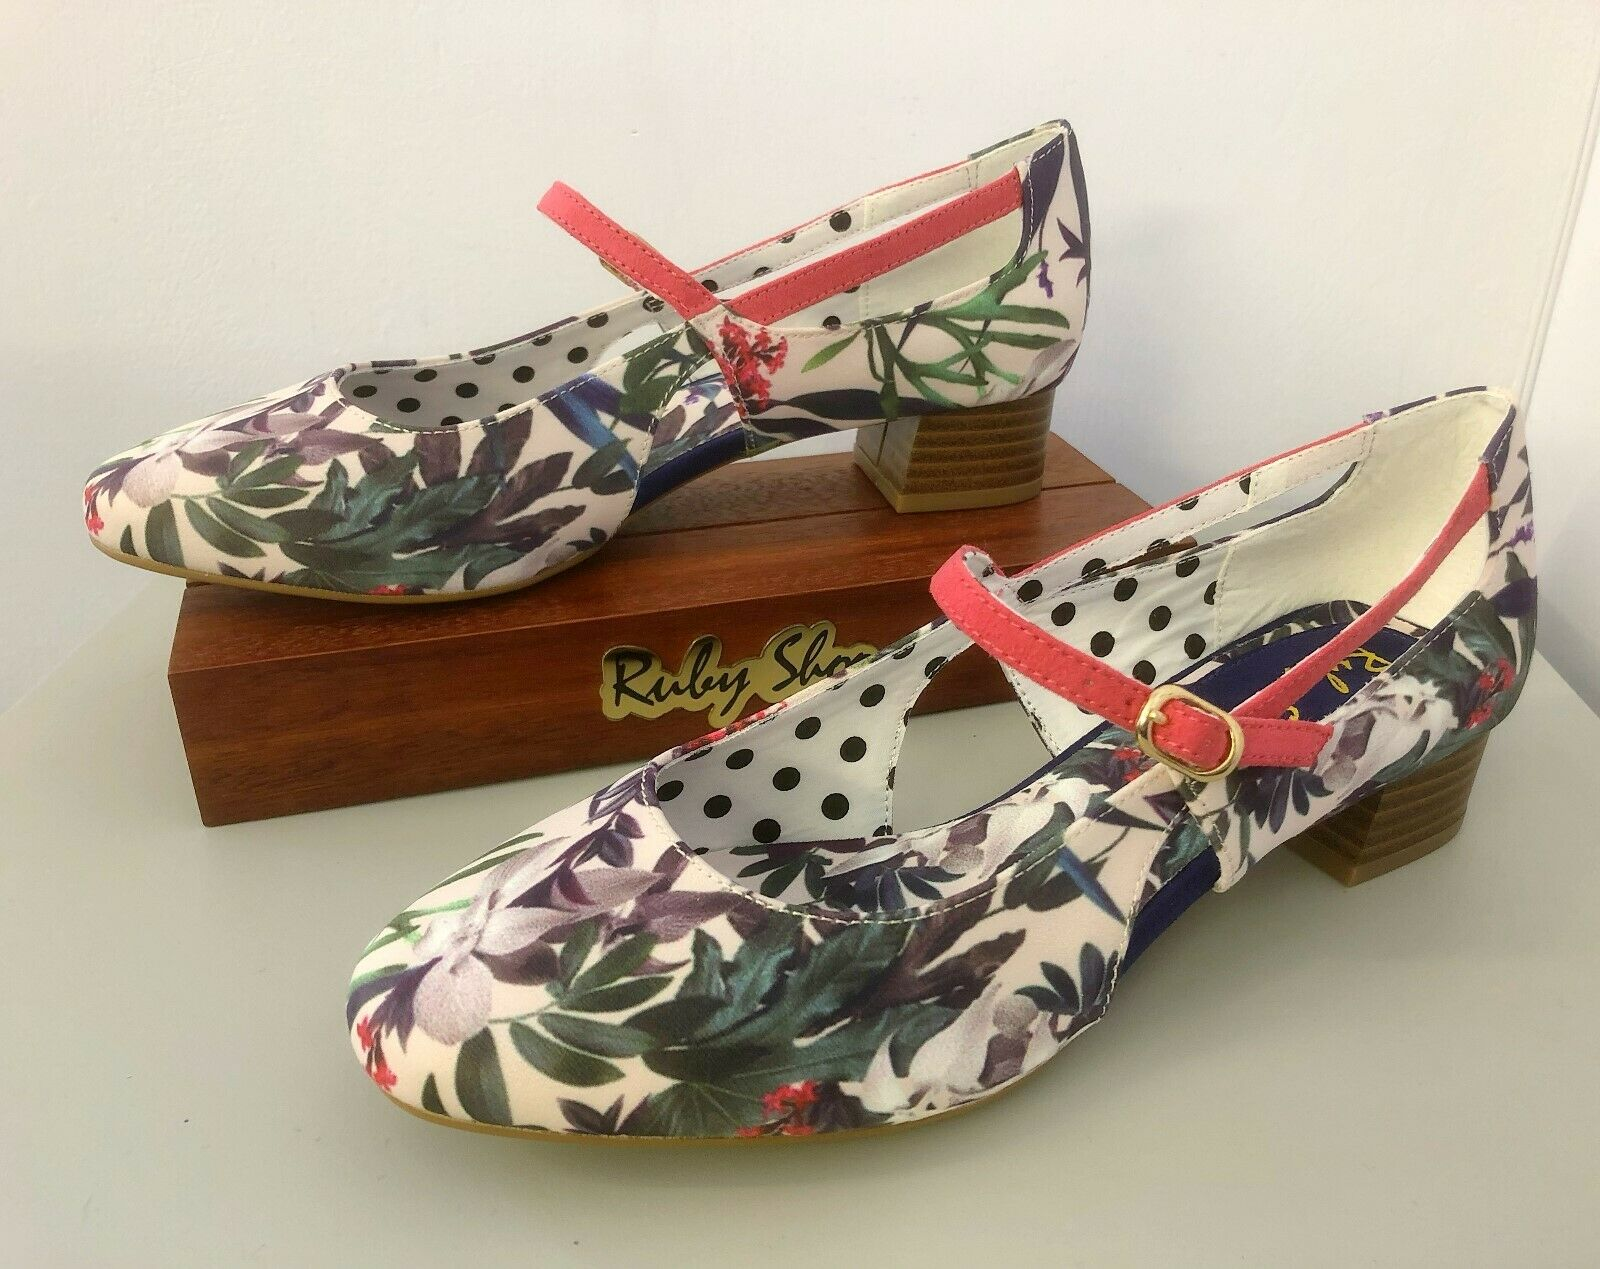 RUBY SHOO IRIS Sage Heeled SHOES 7 7 7 Floral White Pink WEDDING OCCASION 100542